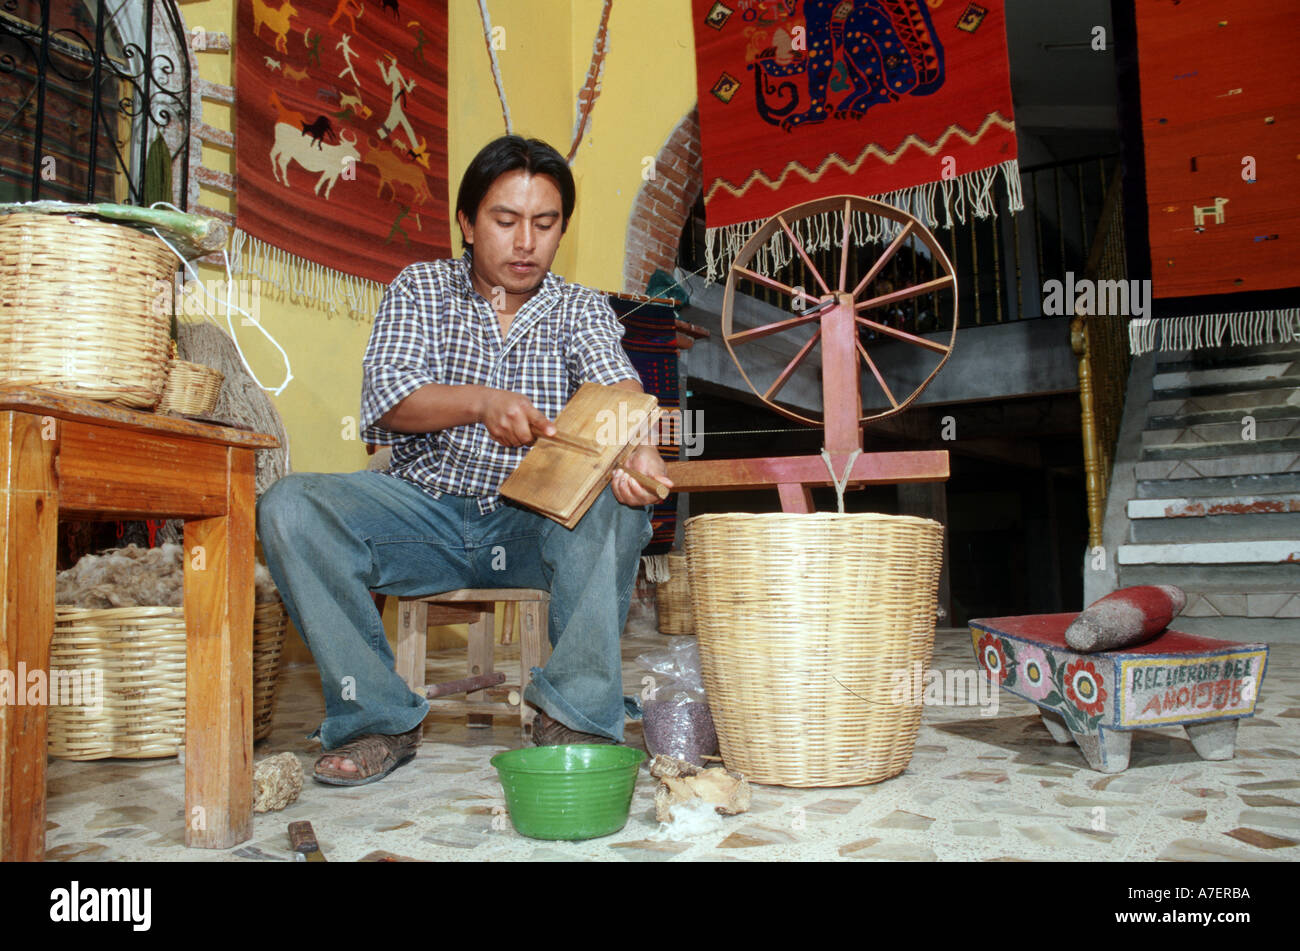 Mexico, Oaxaca, Teotitlan Del Valle. Man Demonstates Techniques For  Handmade Zapotec Indian Rugs. (MR)